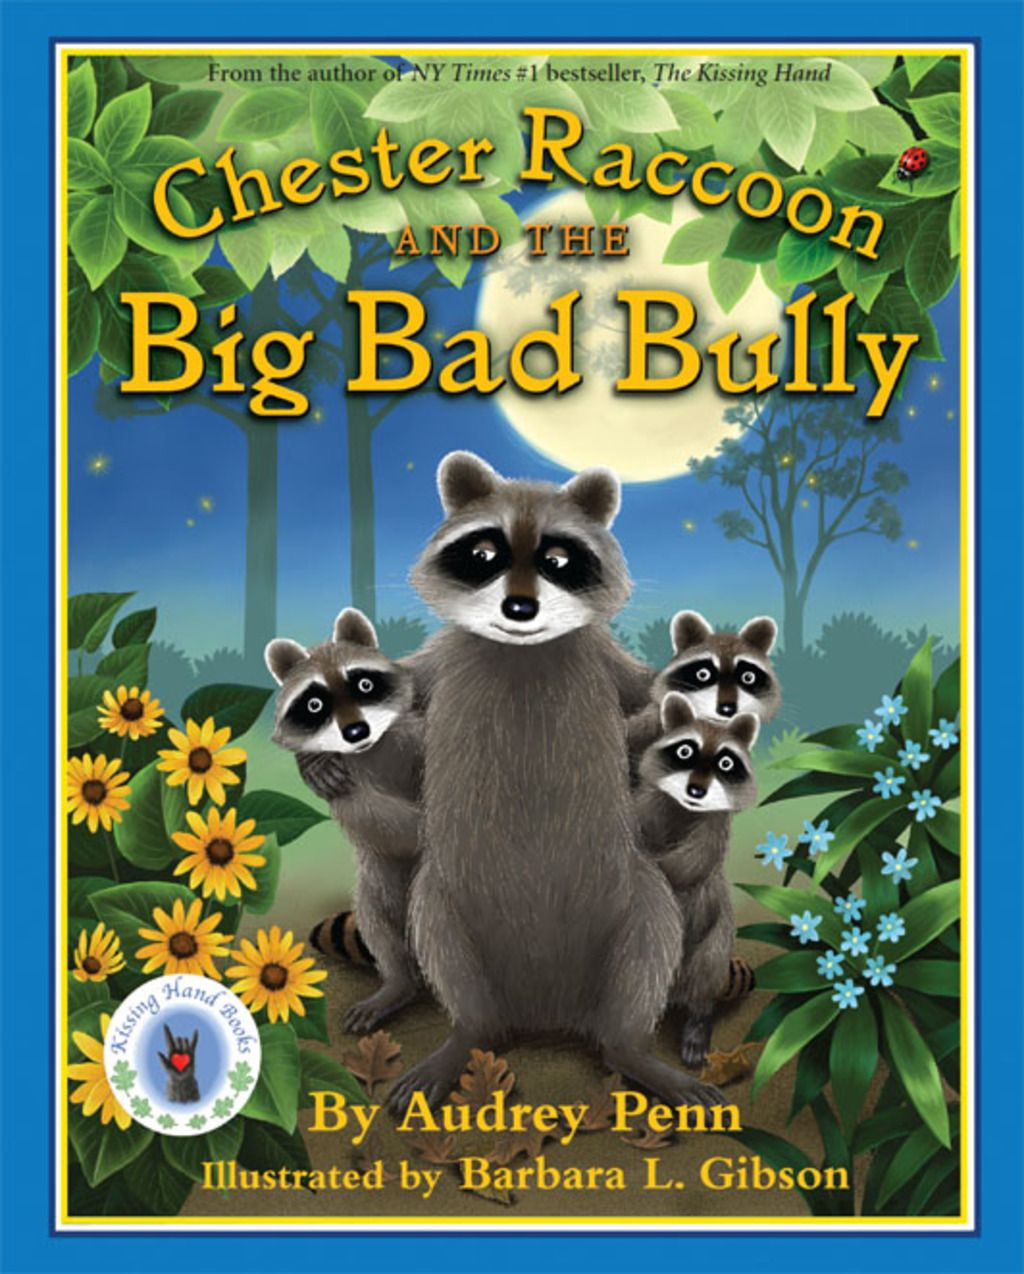 Chester Raccoon And The Big Bad Bully Ebook